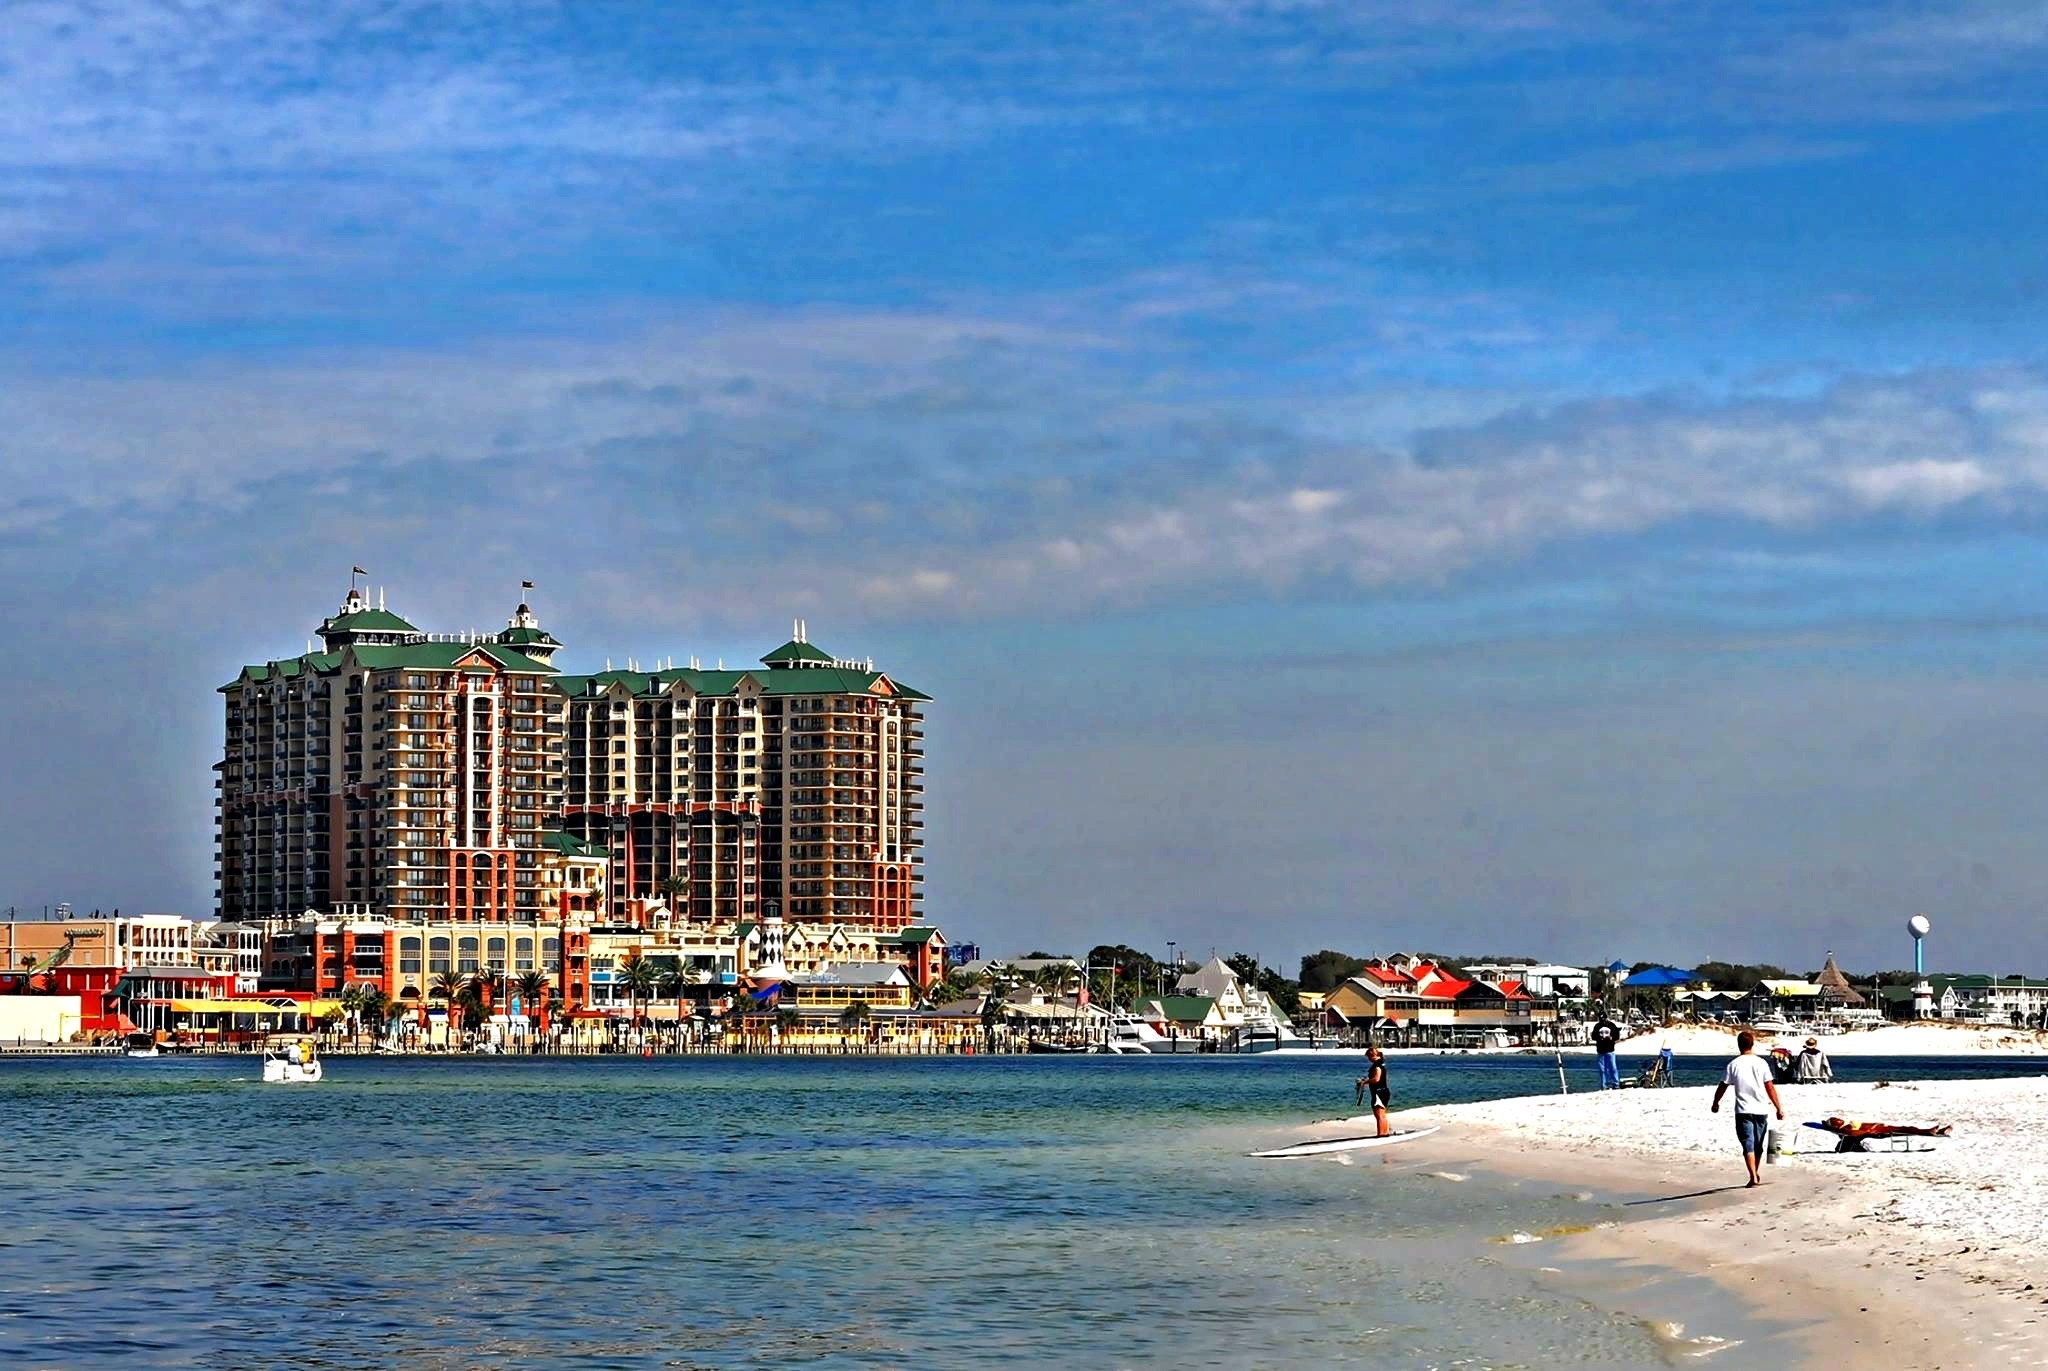 View of the Emerald Grande at HarborWalk Village from its private beach